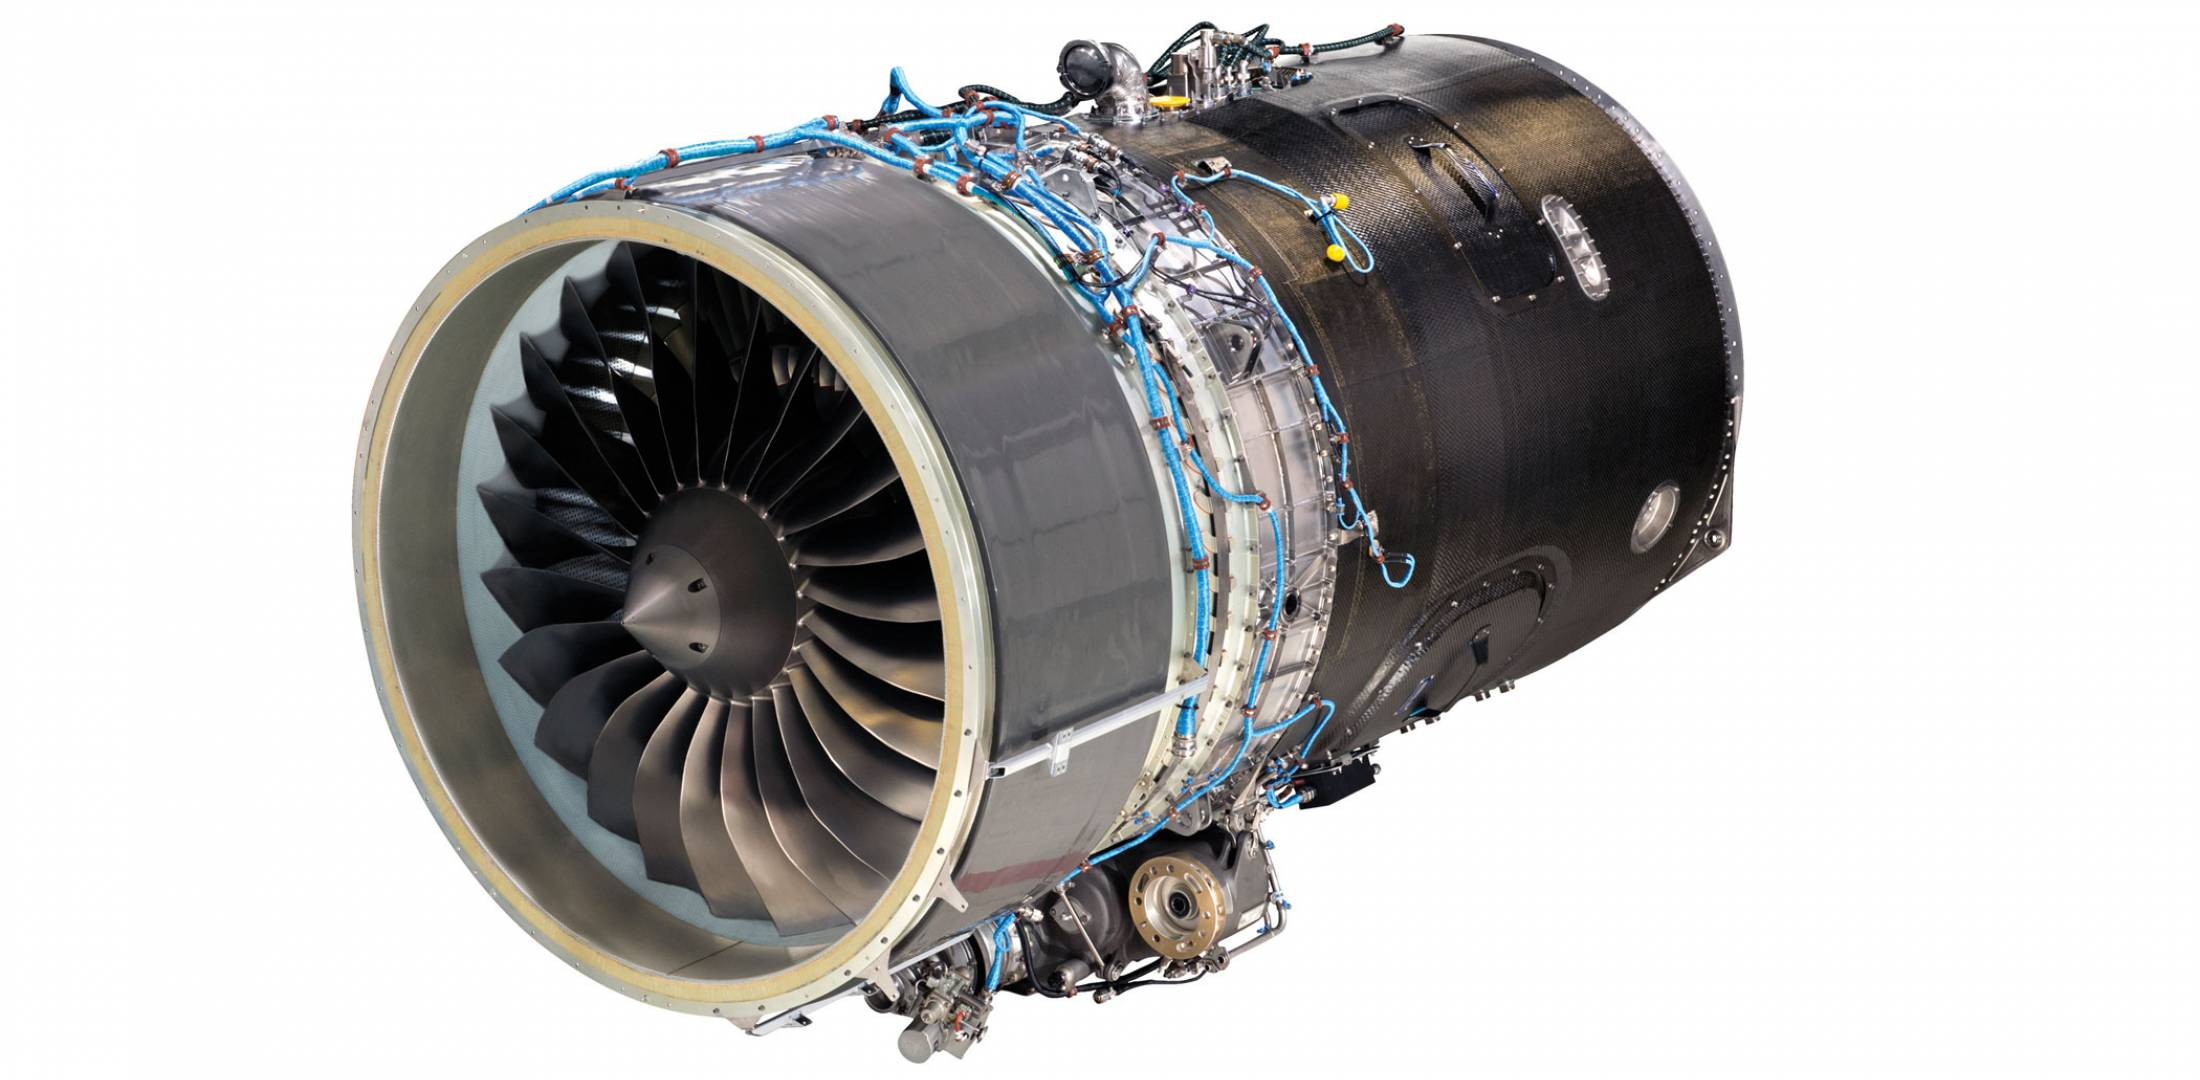 PW800s Engines Fulfilling Promise on New Gulfstream